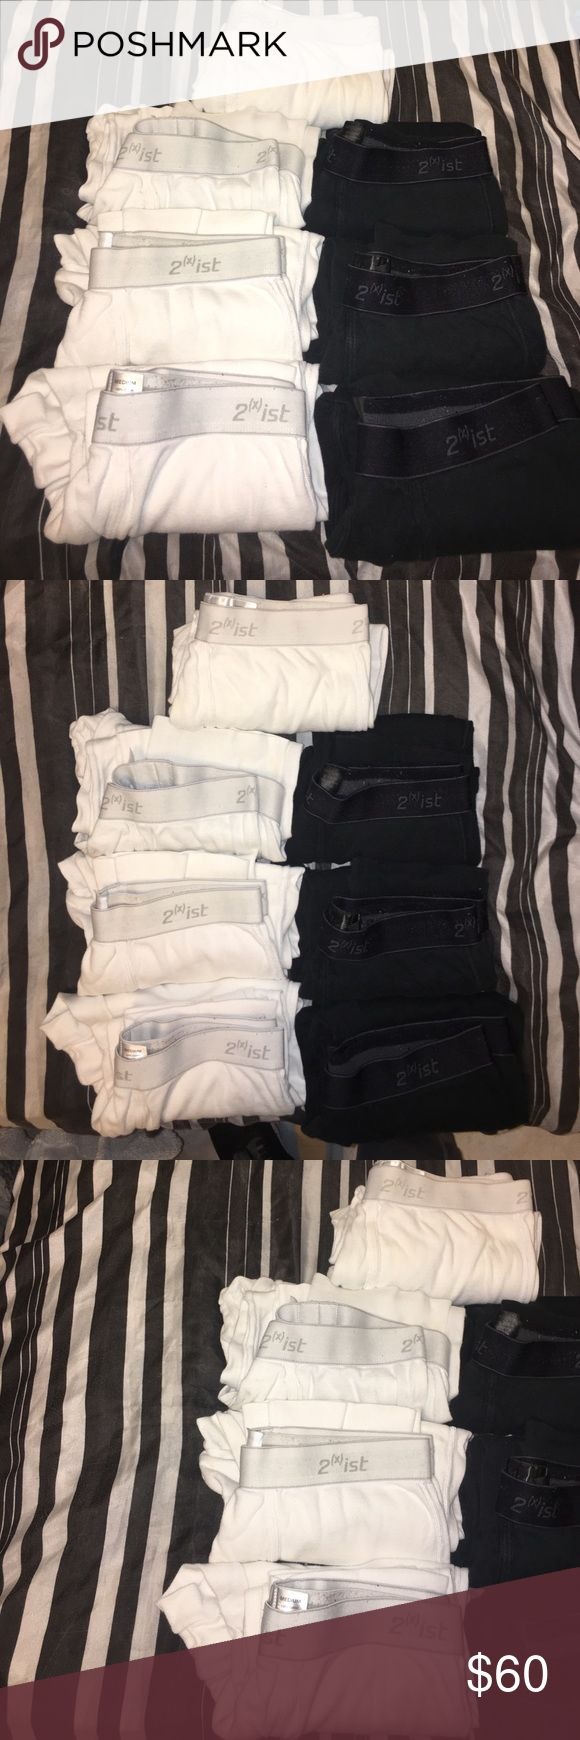 2 (x) Ist Brand Bottom 7 seven Thermals This are in great condtion. There are a few stains on the two White thermals and others are all in great condition. I used this during winter. They are all in Size Medium. You get 7 thermals listed 2xist Underwear & Socks